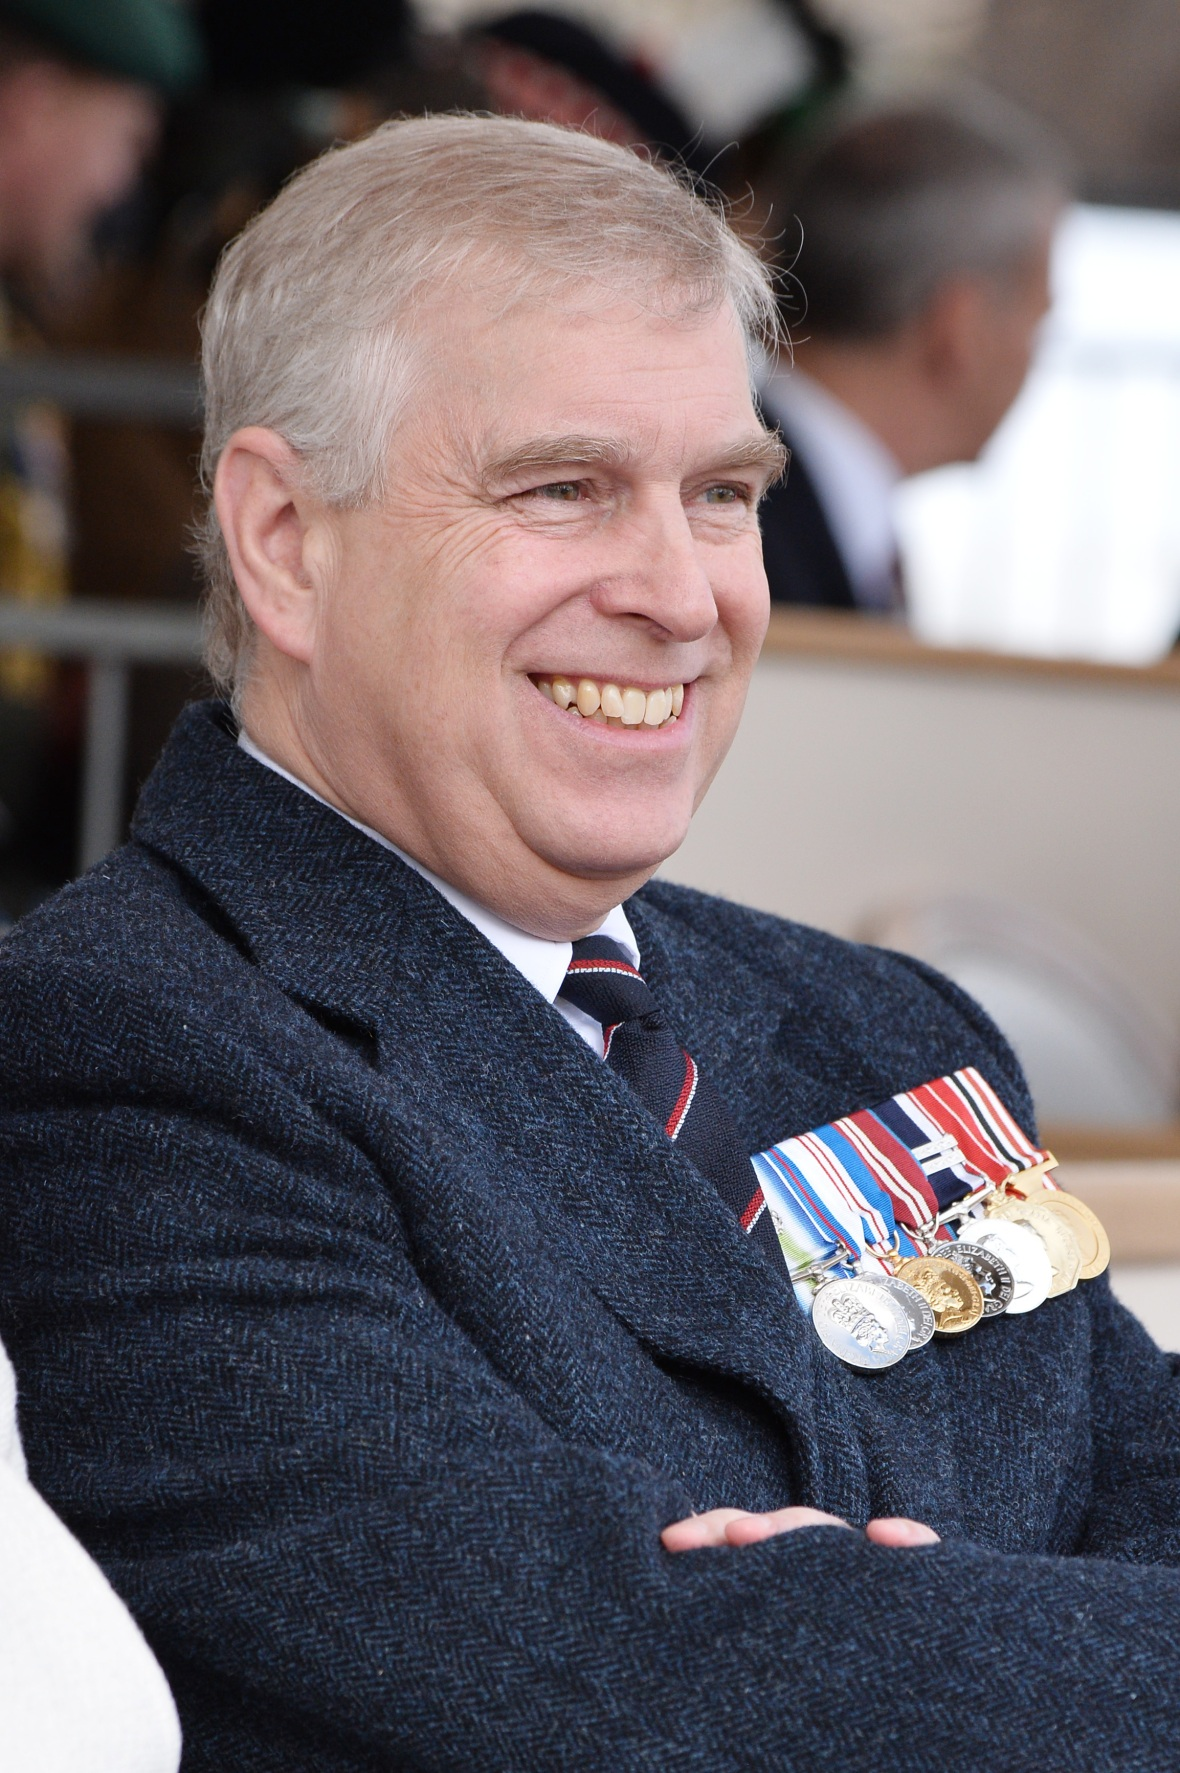 prince andrew getty images